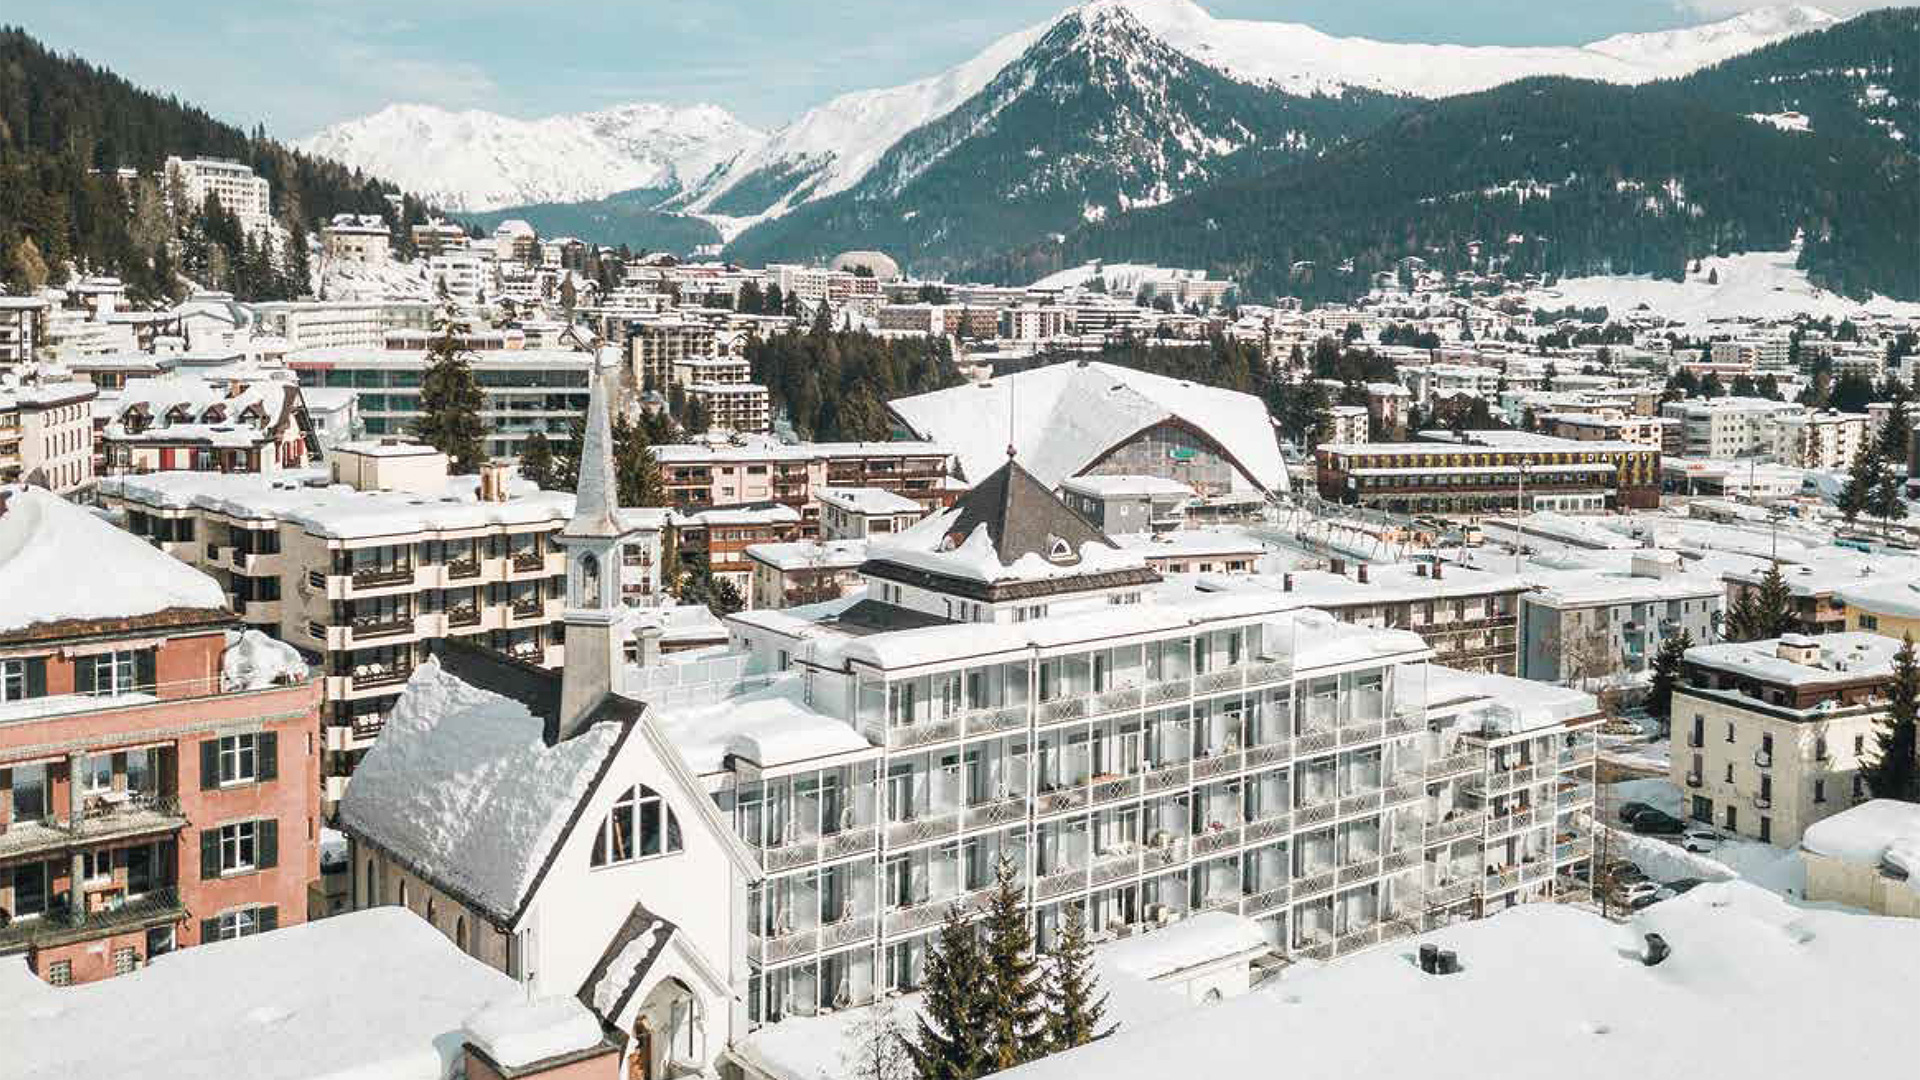 Residences at the Hard Rock Hotel Apartments, Switzerland